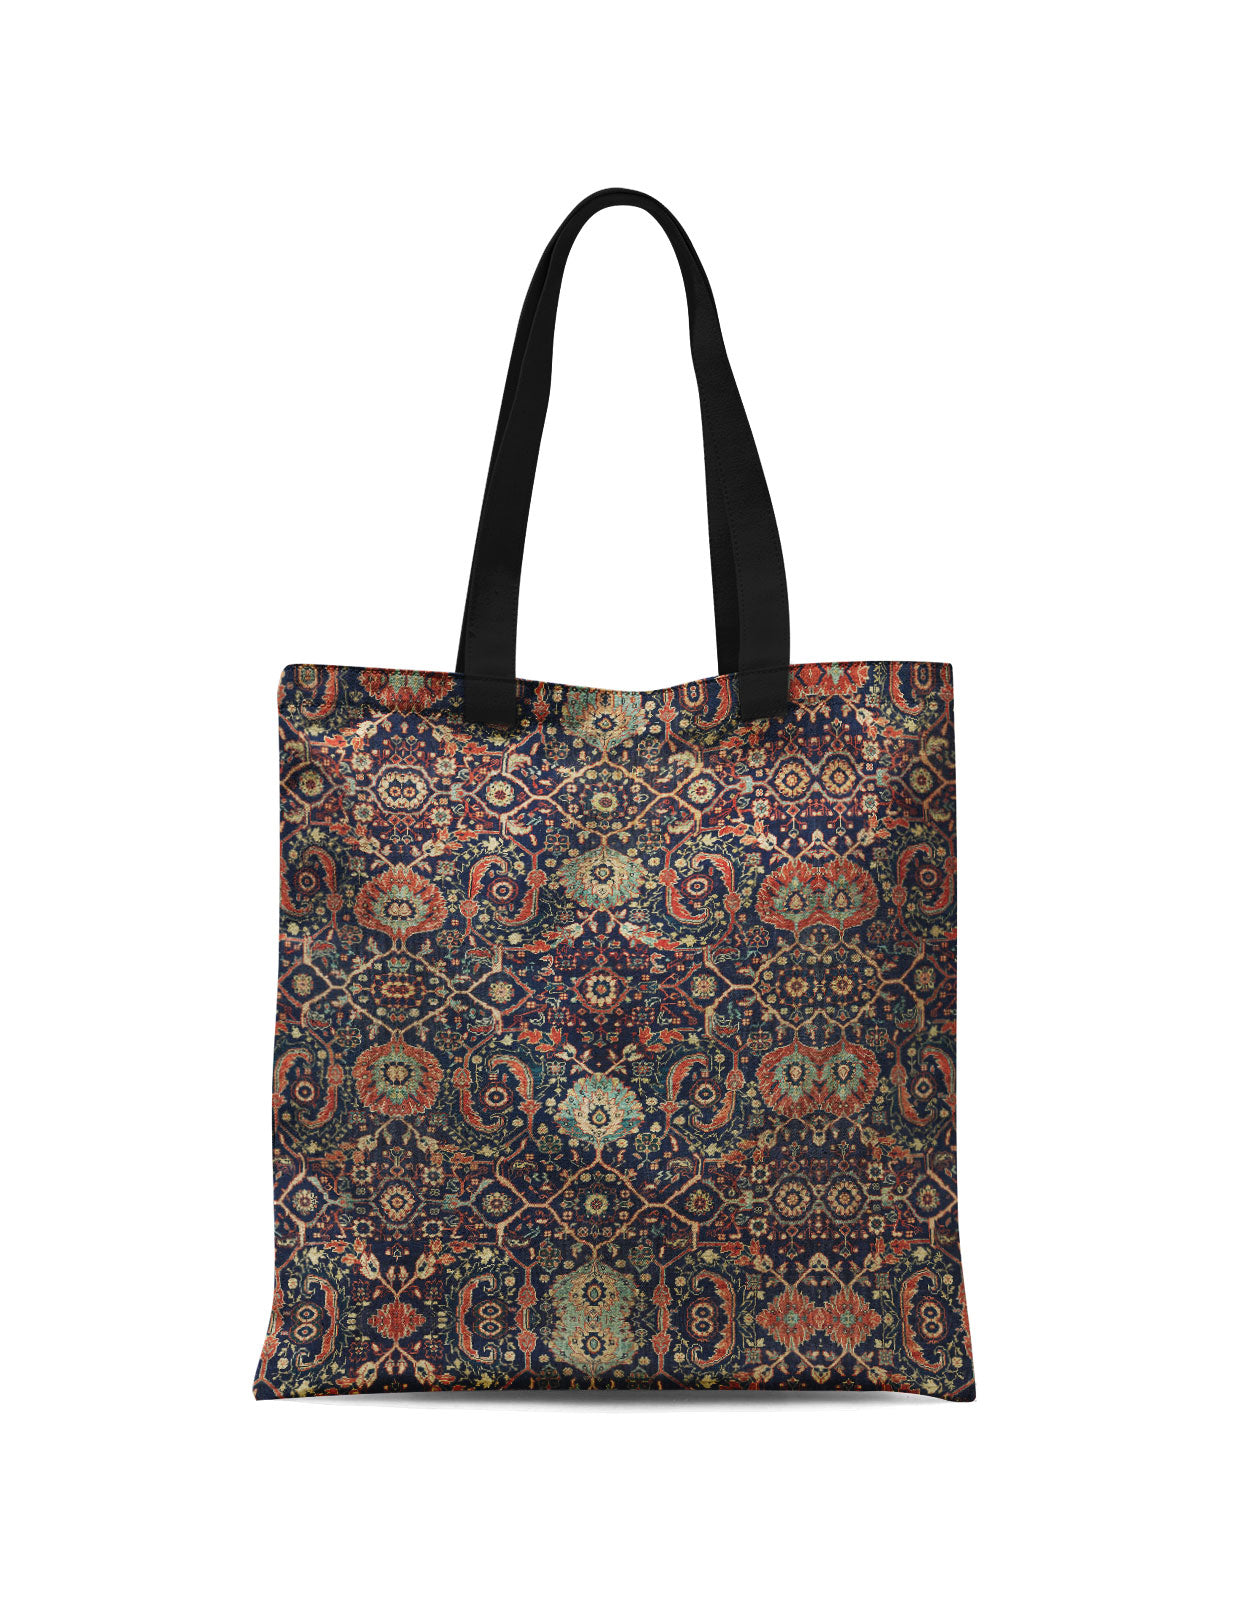 Abstra Oriental - Red Floral Patterns Canvas Tote